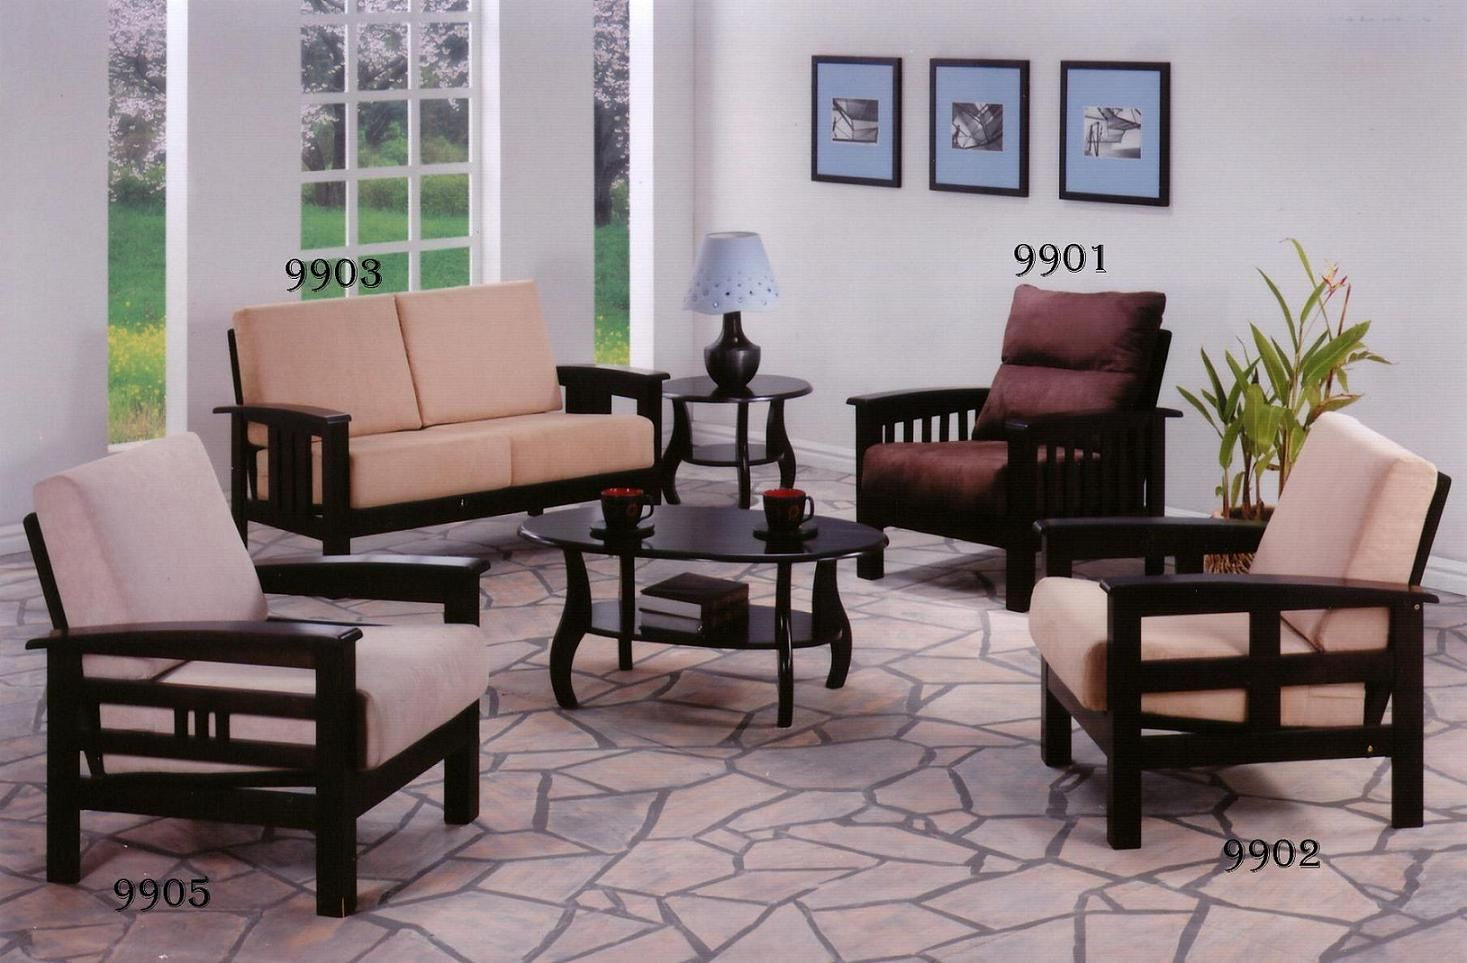 wooden sofa sets designs india modern round sleeper bed pictures in traditional indian style this for all